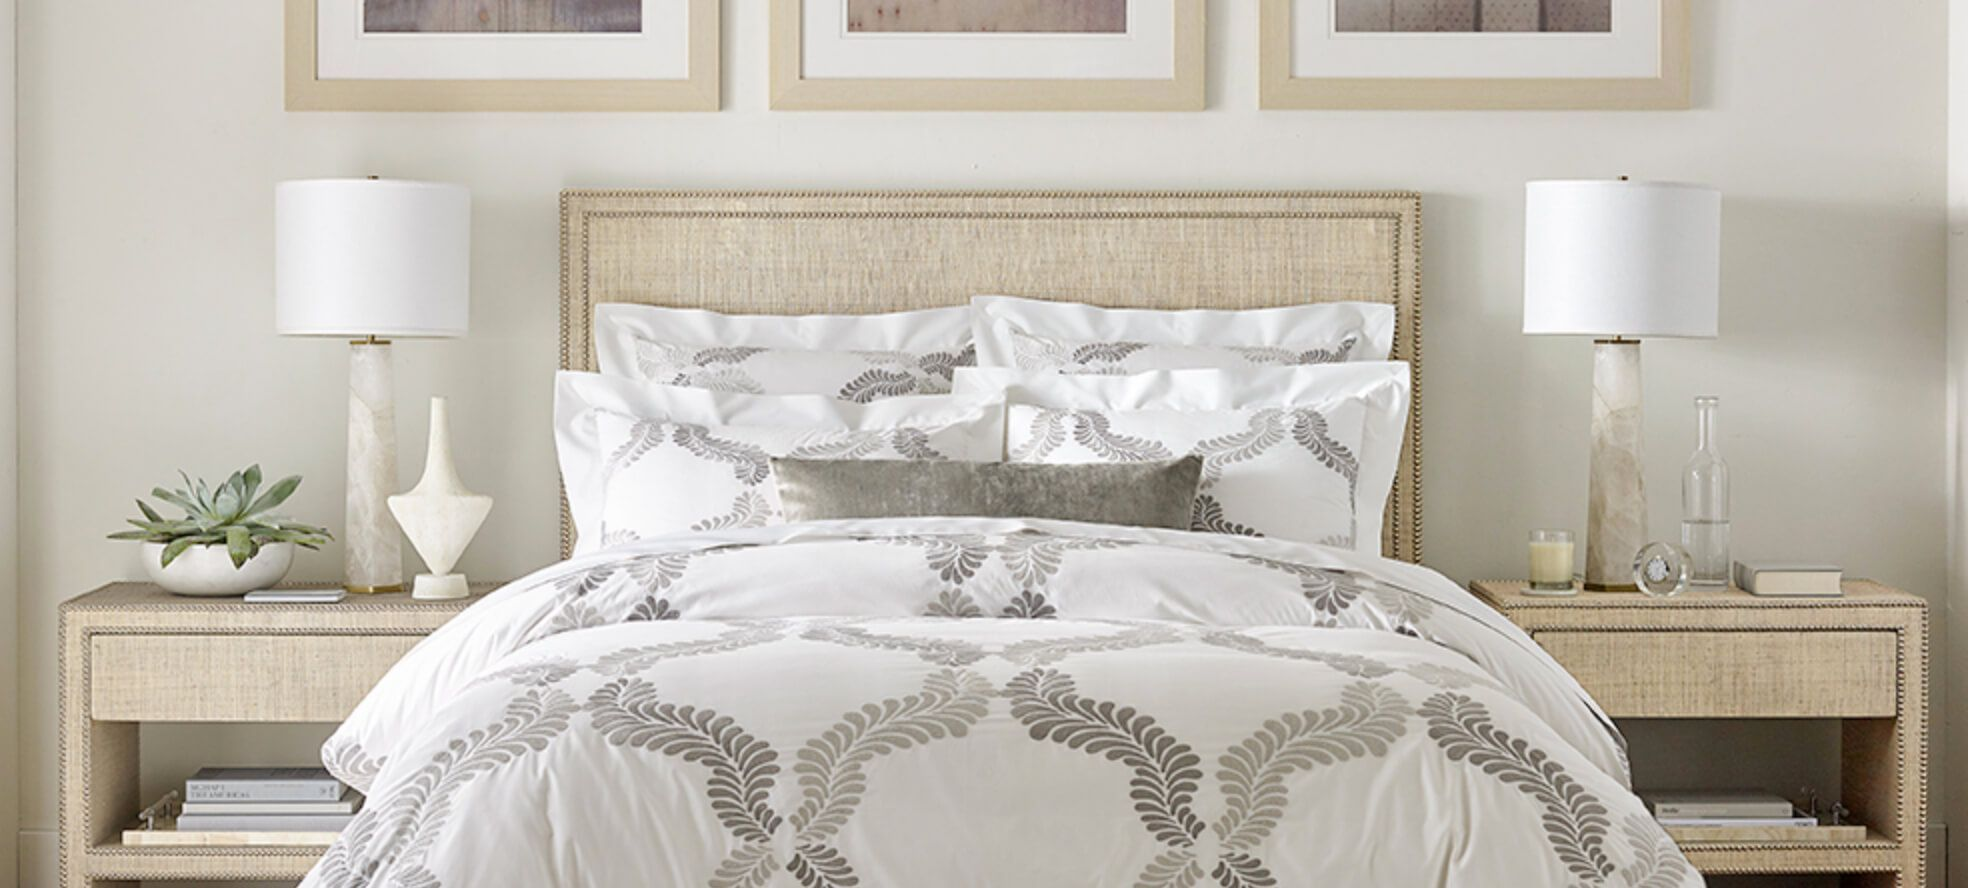 Pin by Emily Watson on Home Remodeling Tips Bedroom